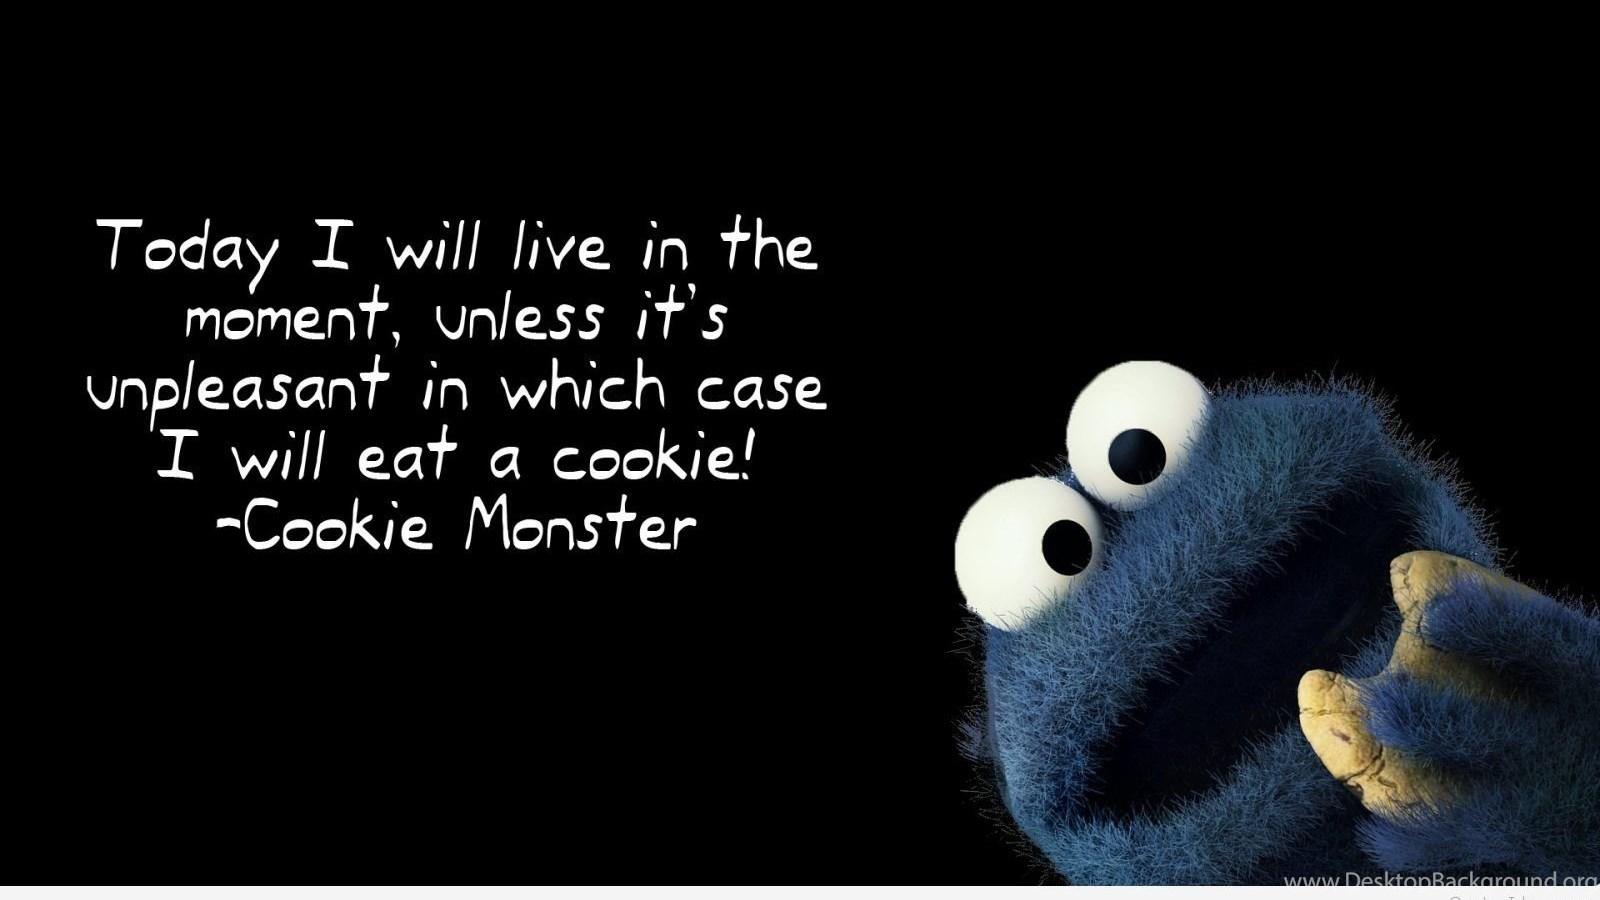 Awesome Funny Desktop Wallpapers Quotes Sayings Background